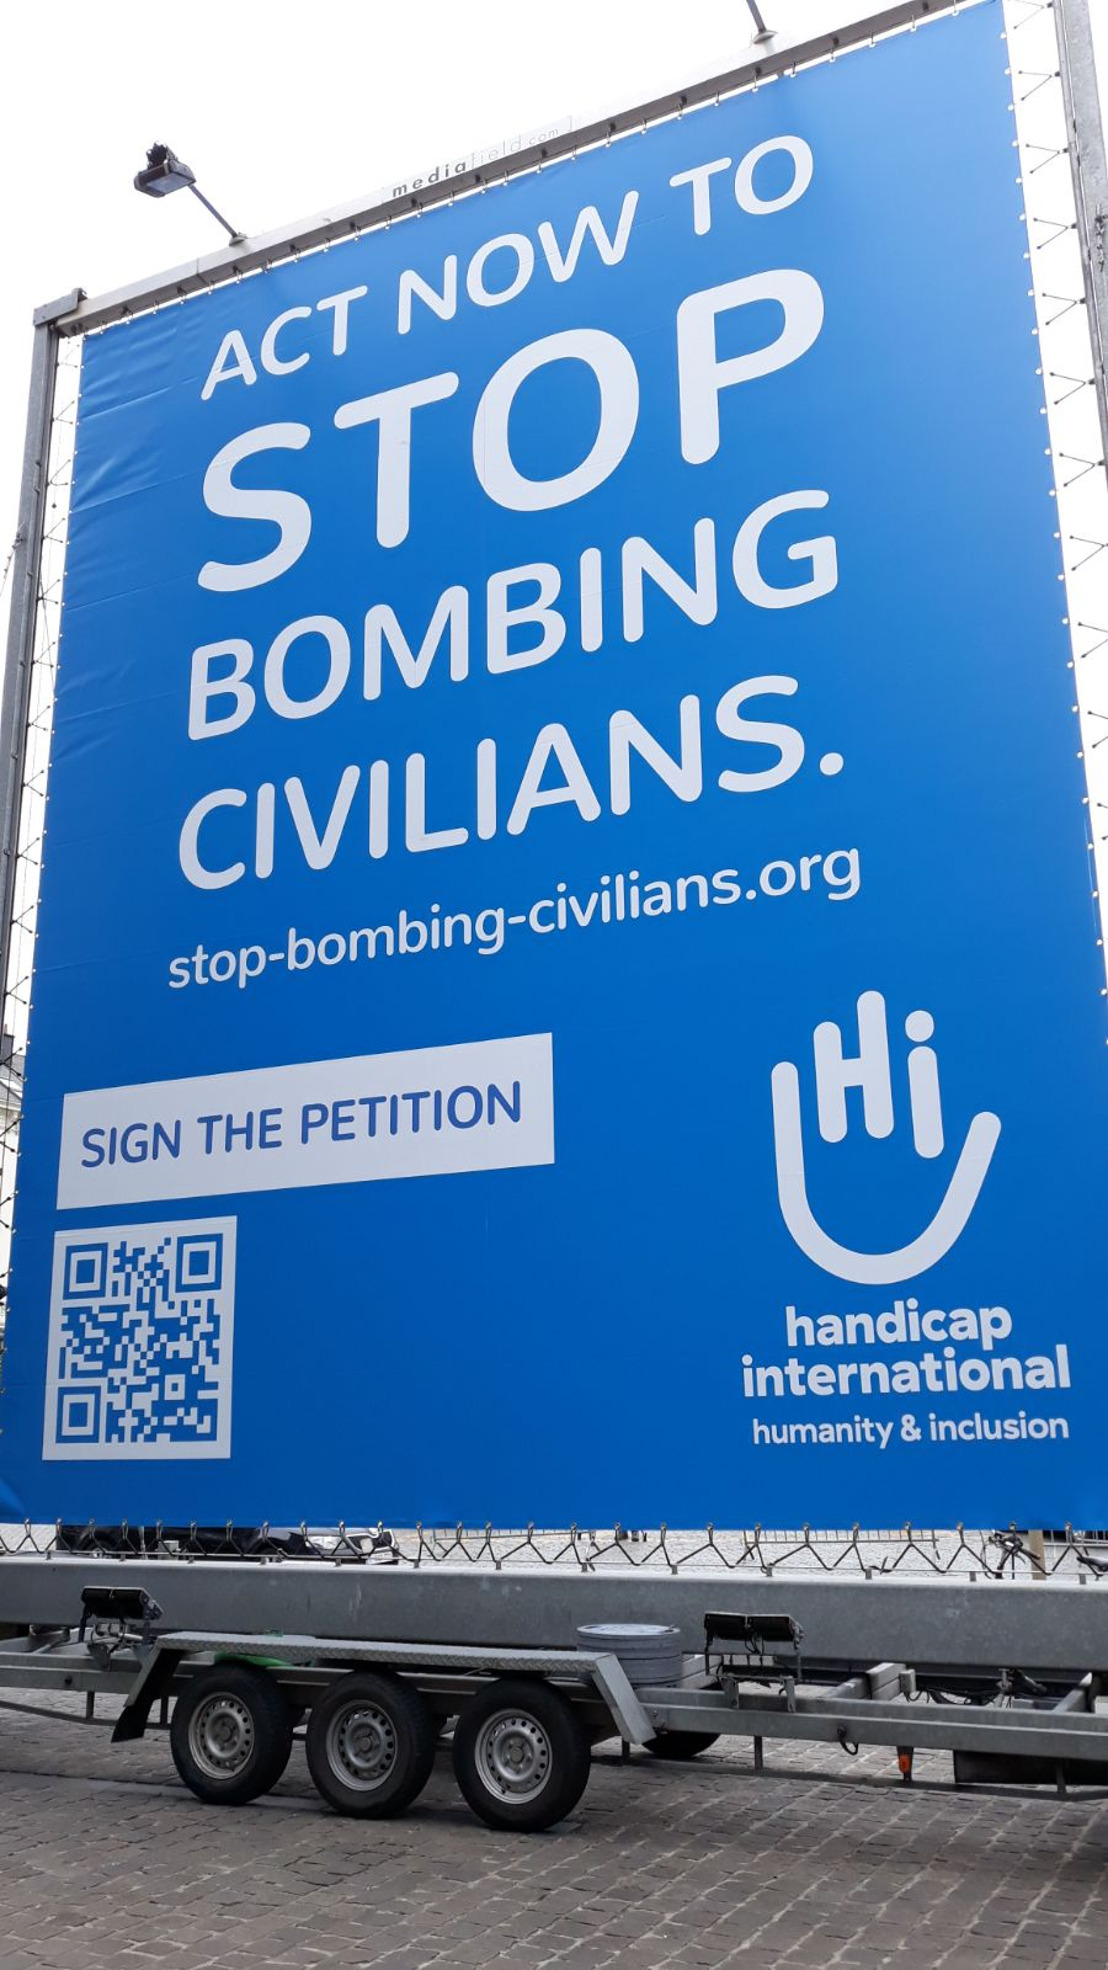 Handicap International challenges the international community: act now to stop bombing civilians!